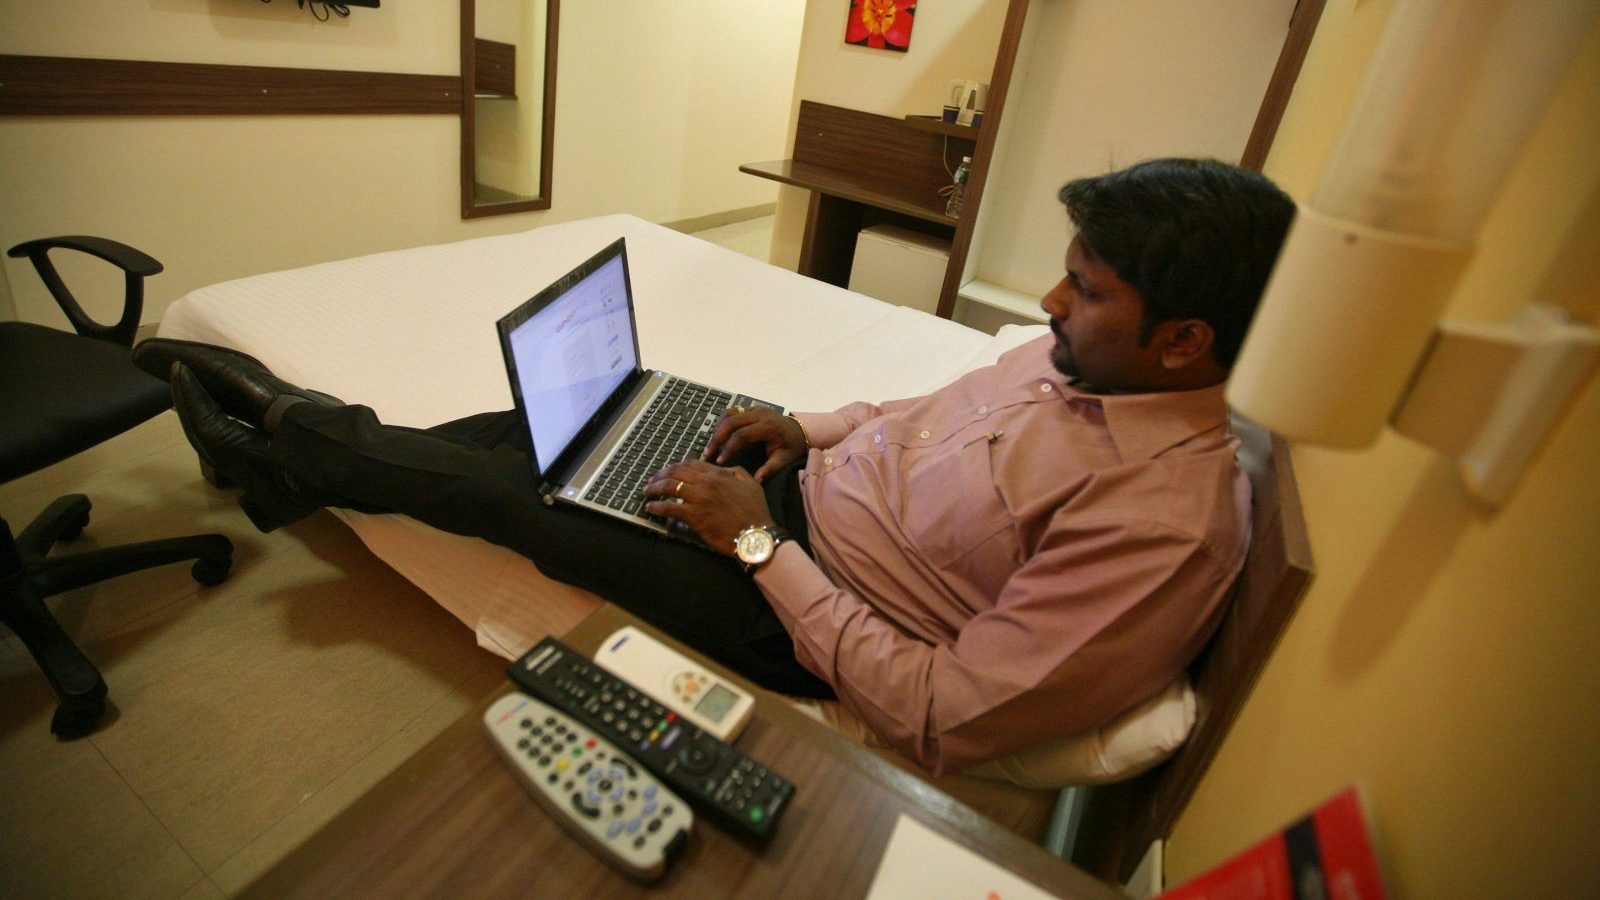 A guest works on a laptop inside his room at the Tata Group's Indian Hotels Co. Ginger chain in the western Indian city of Ahmedabad May 5, 2012. Rising spending by domestic travellers in India and Indonesia is prompting international hoteliers to build budget and mid-scale brands in the world's second and fourth largest populations. Ginger, run by the Tata Group's Indian Hotels Company, owner of Taj hotels, has 24 budget hotels in India with plans to grow to 75 hotels over the next four years. Picture taken May 5, 2012. REUTERS/Amit Dave (INDIA - Tags: BUSINESS TRAVEL SOCIETY) - GM2E86F0OA301